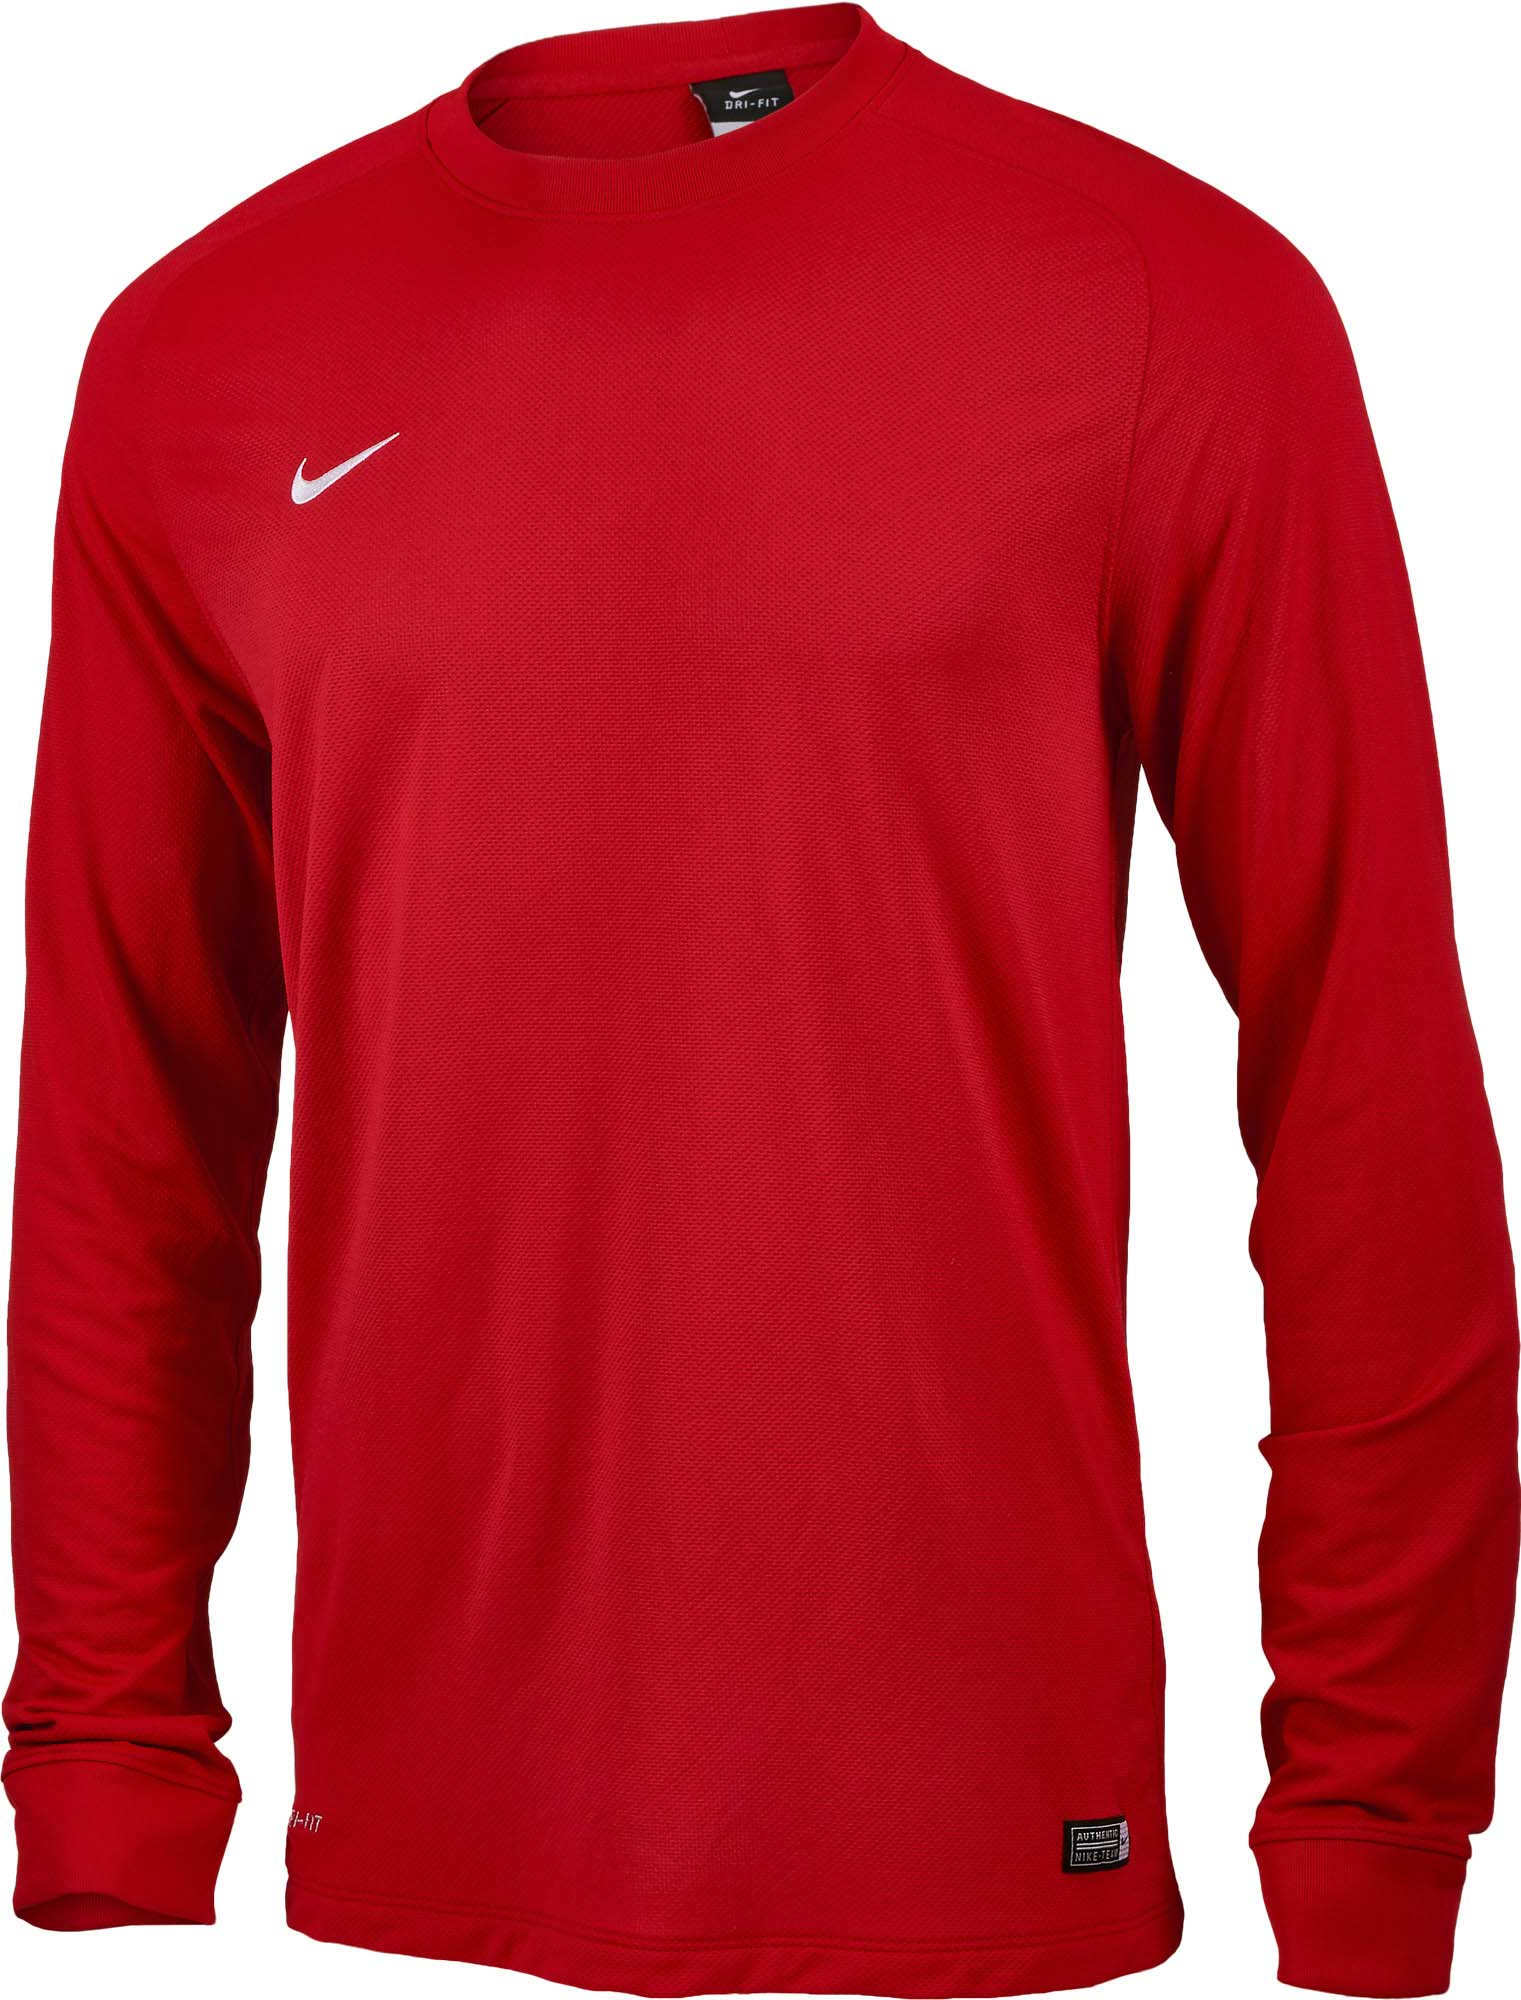 1f7733caad0 Nike Park II Goalkeeper Jersey - Red - Soccer Master